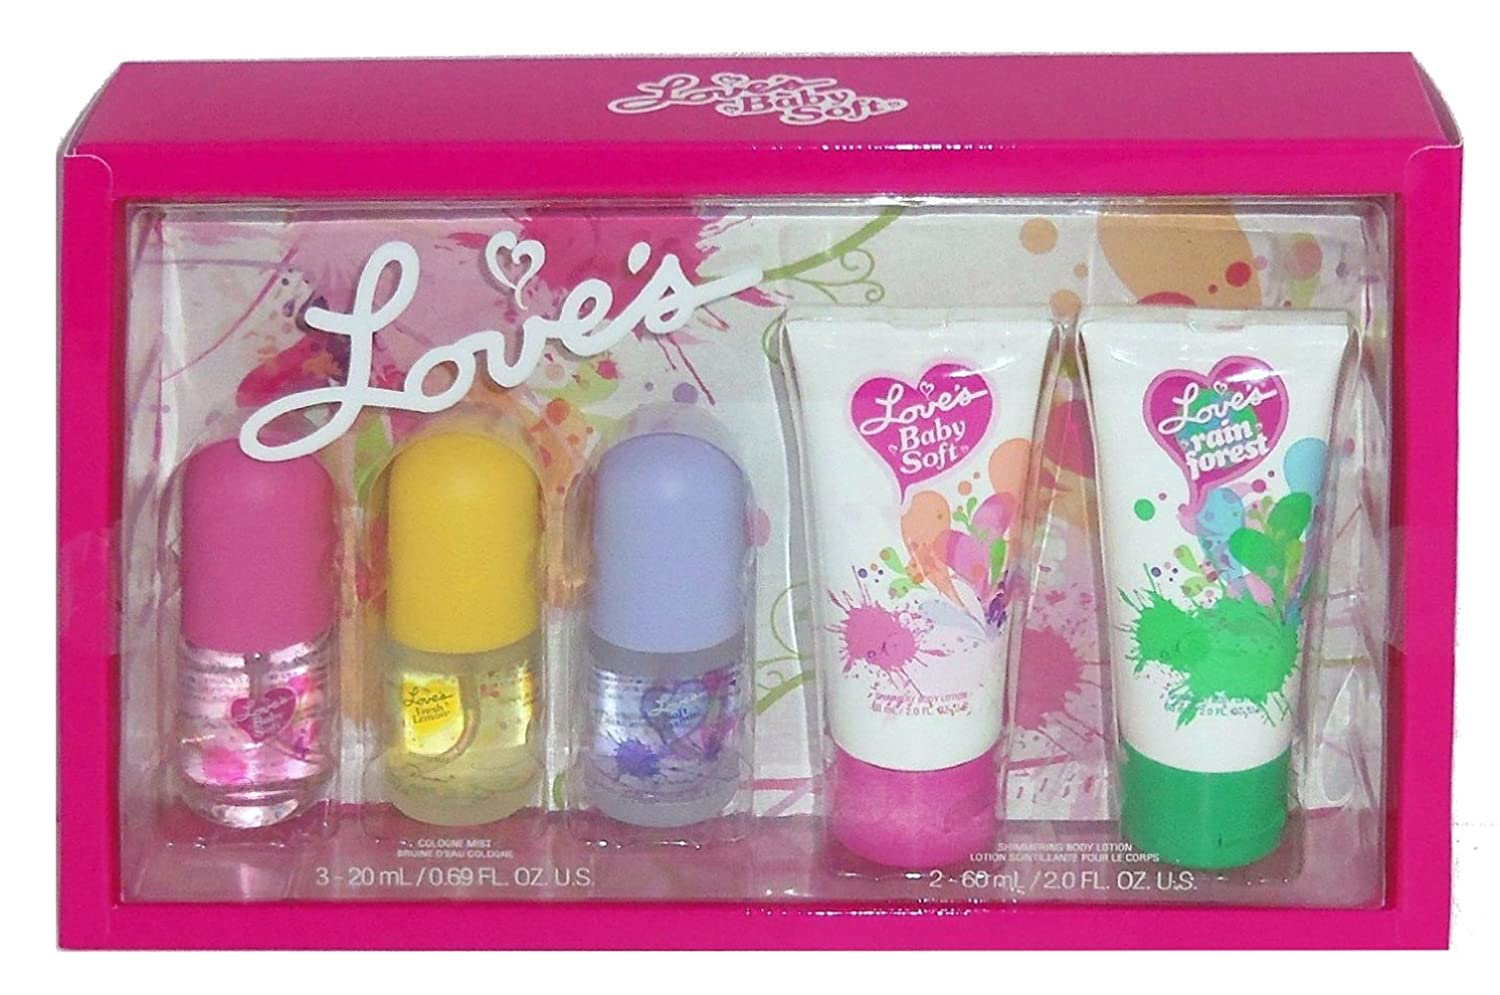 Amazon.com : Love's 5 Piece Scented Body Lotion and Perfume Gift ...